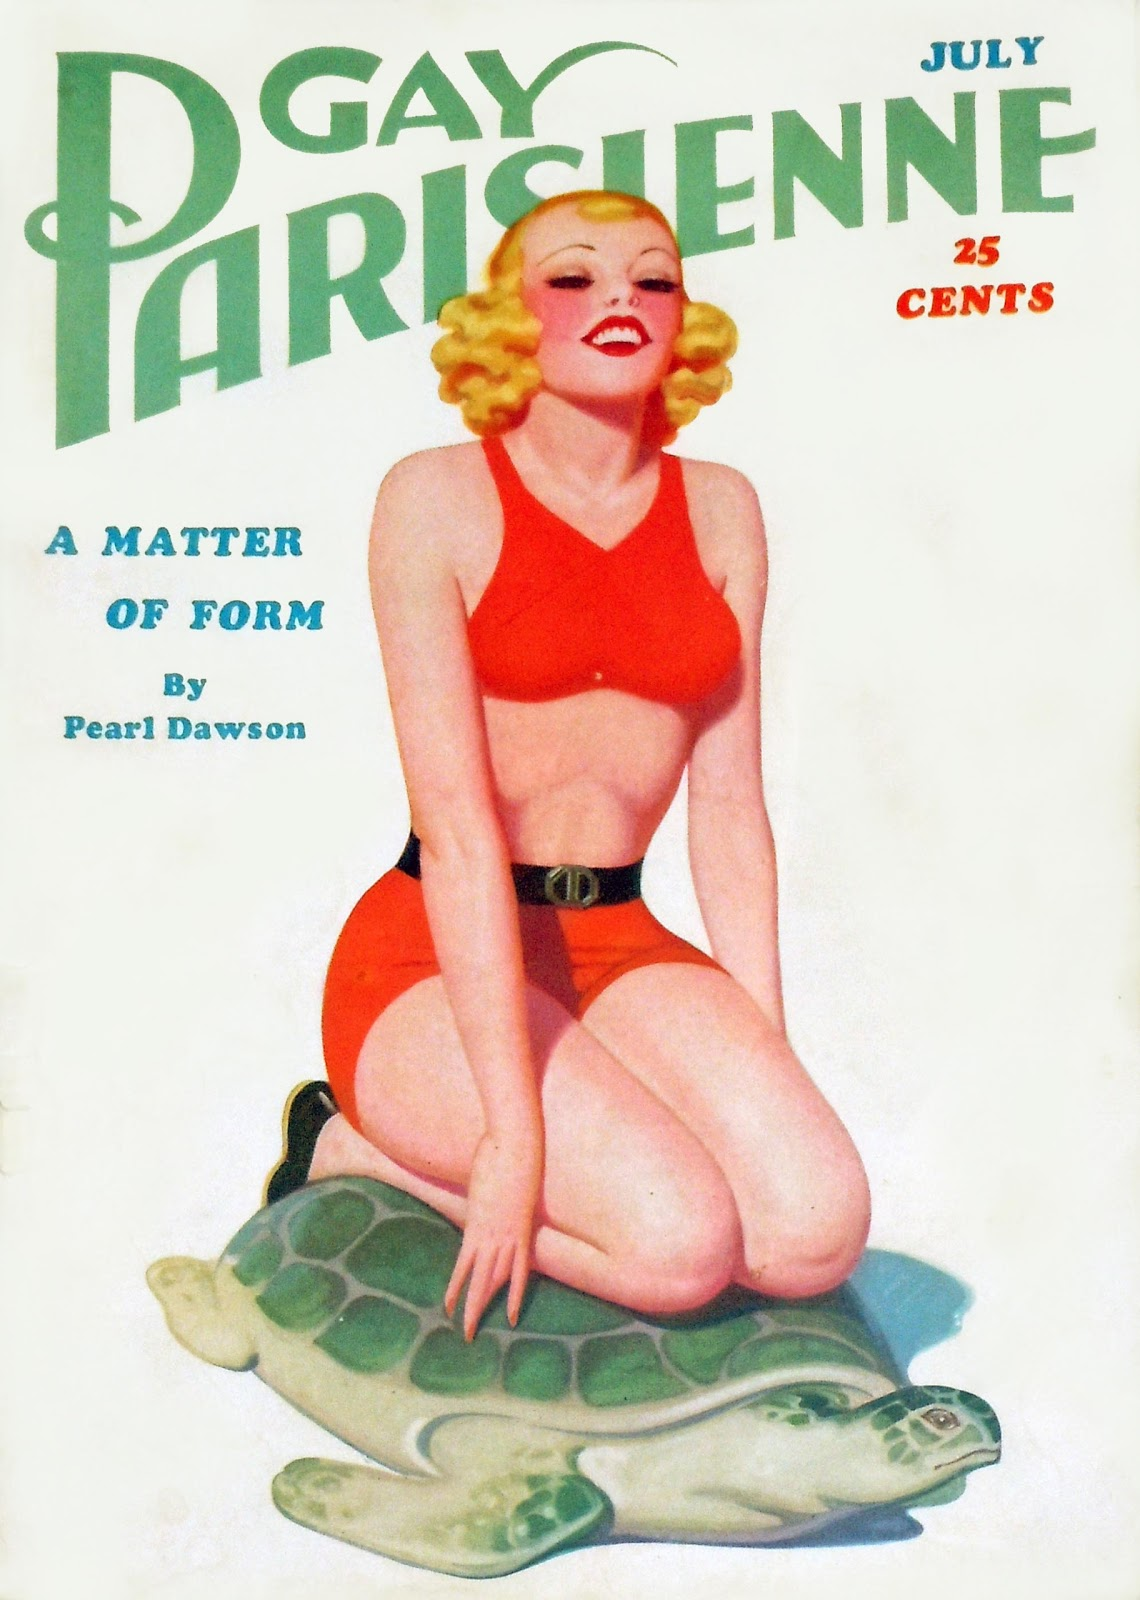 ... for this cover to Harry Donenfeld, the publisher of Gay Parisienne.